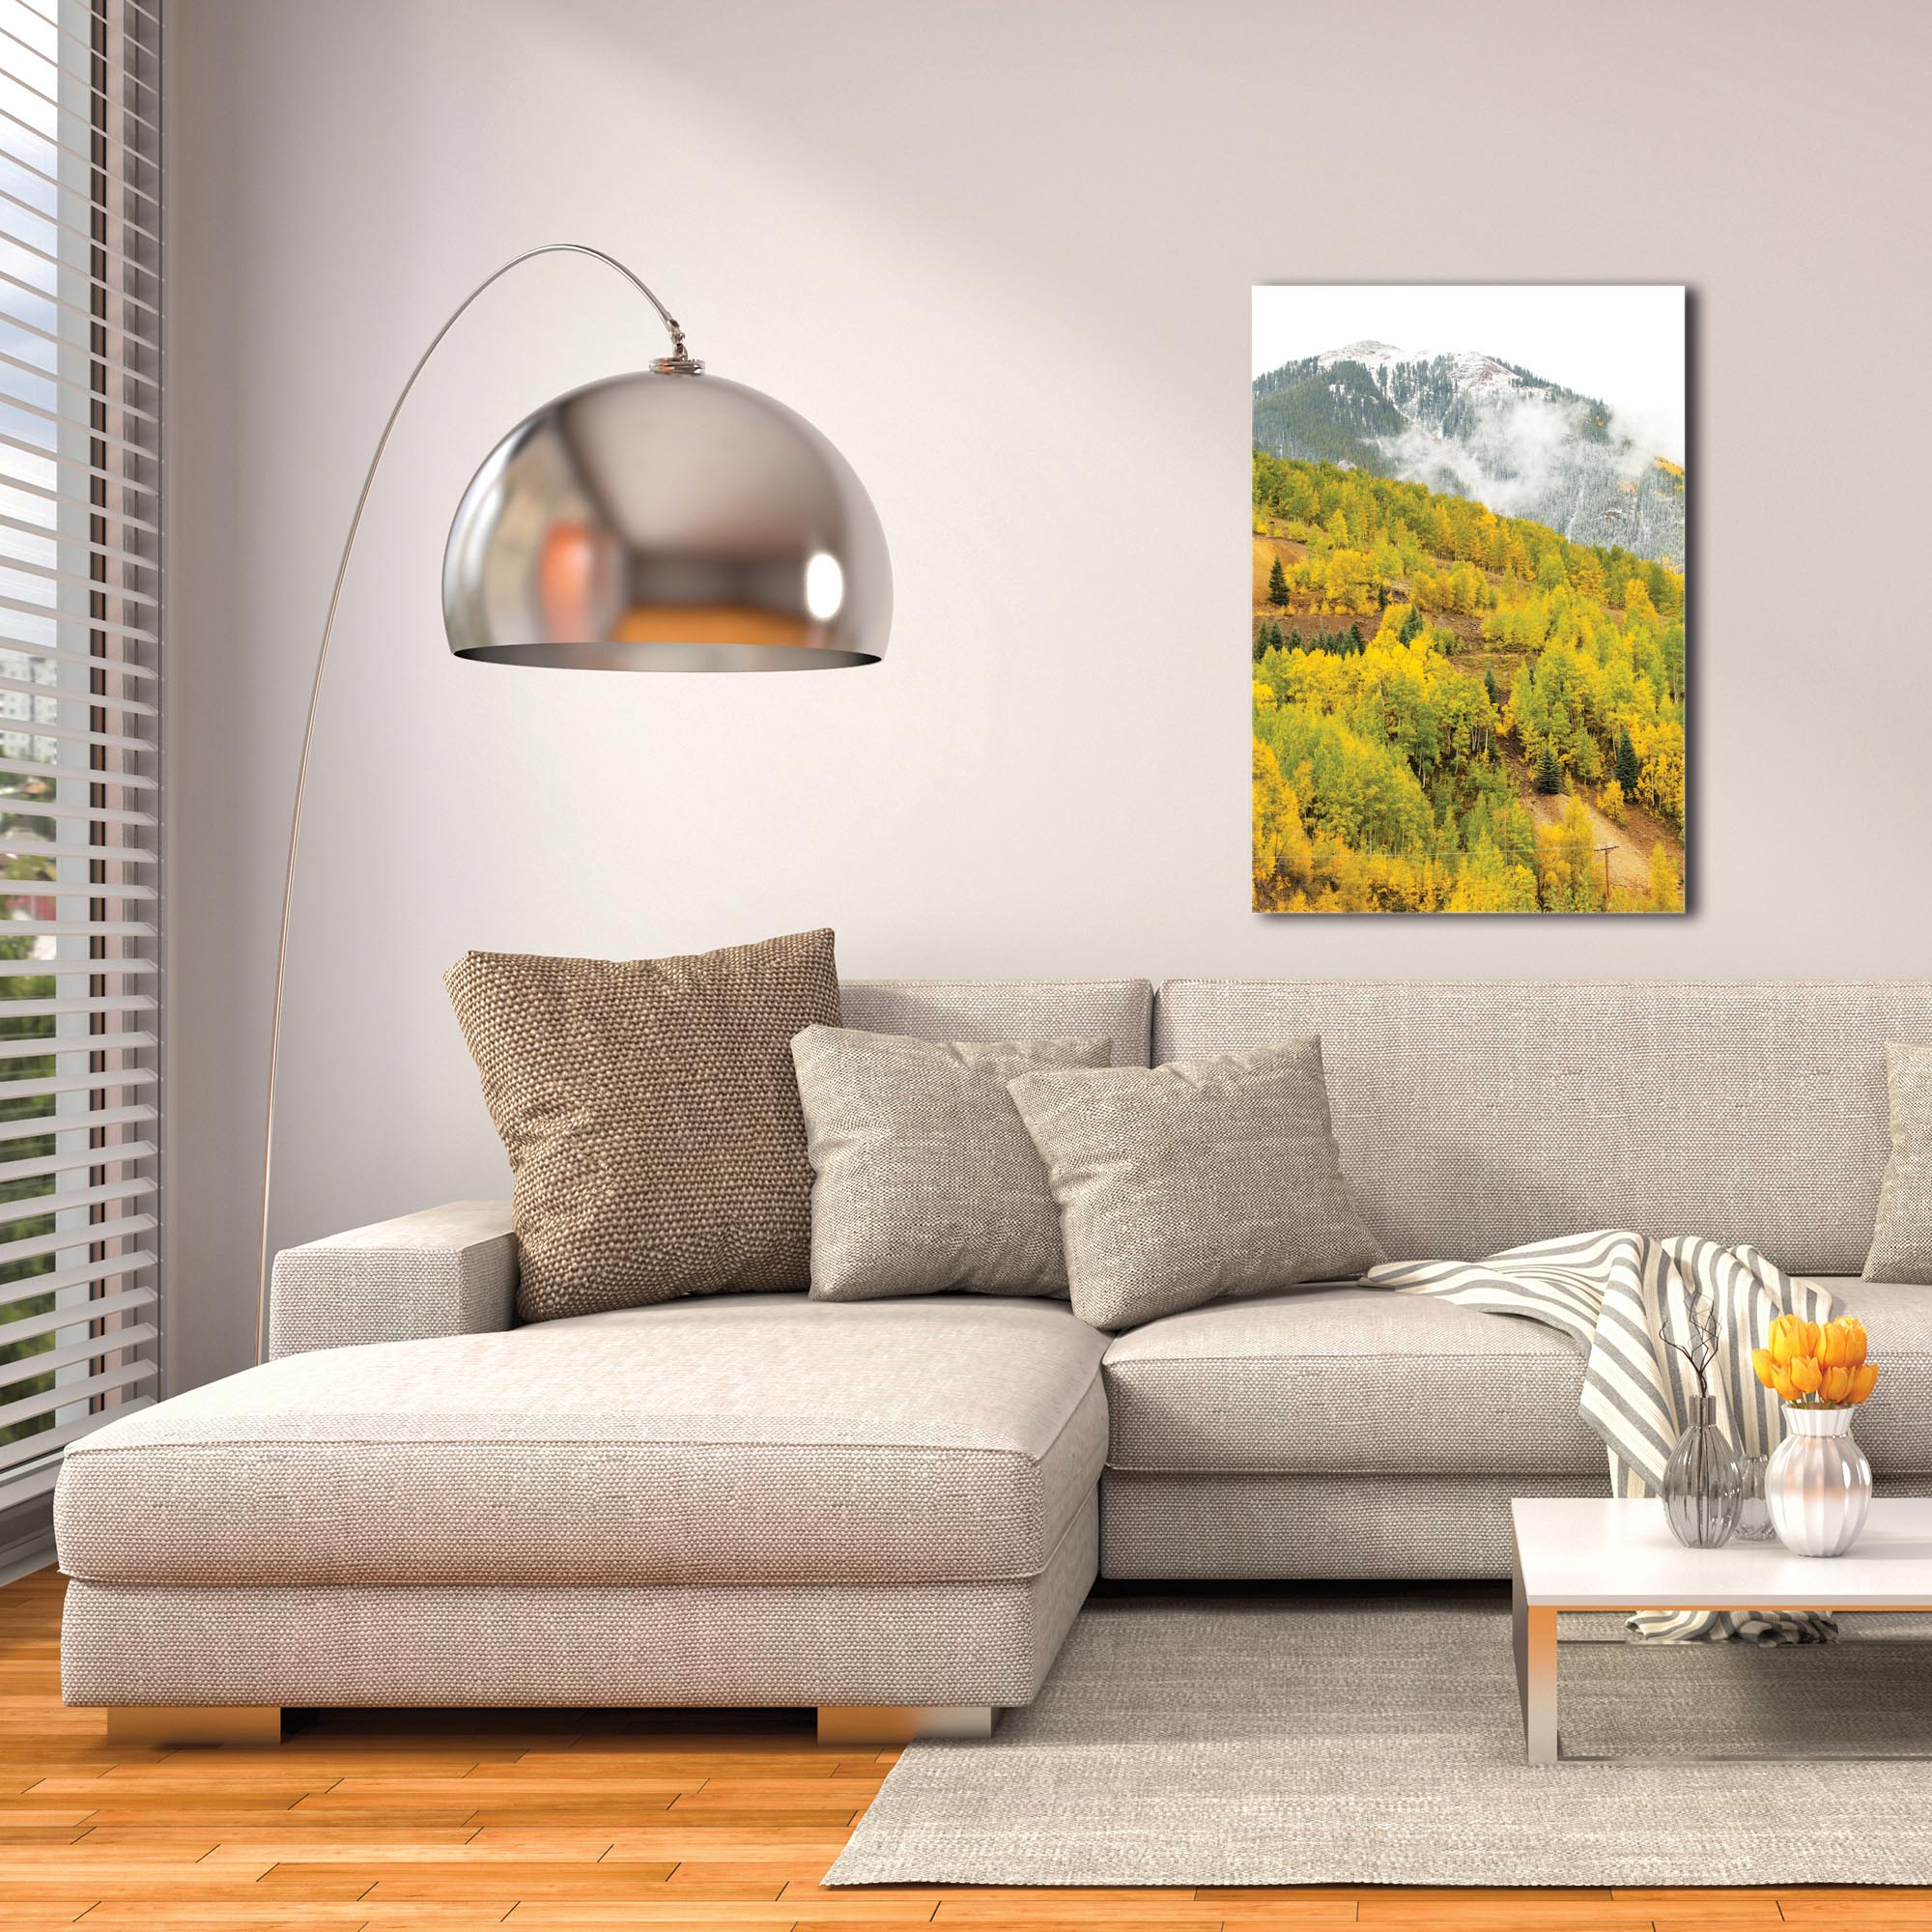 Landscape Photography 'Changing Season' - Autumn Nature Art on Metal or Plexiglass - Image 3